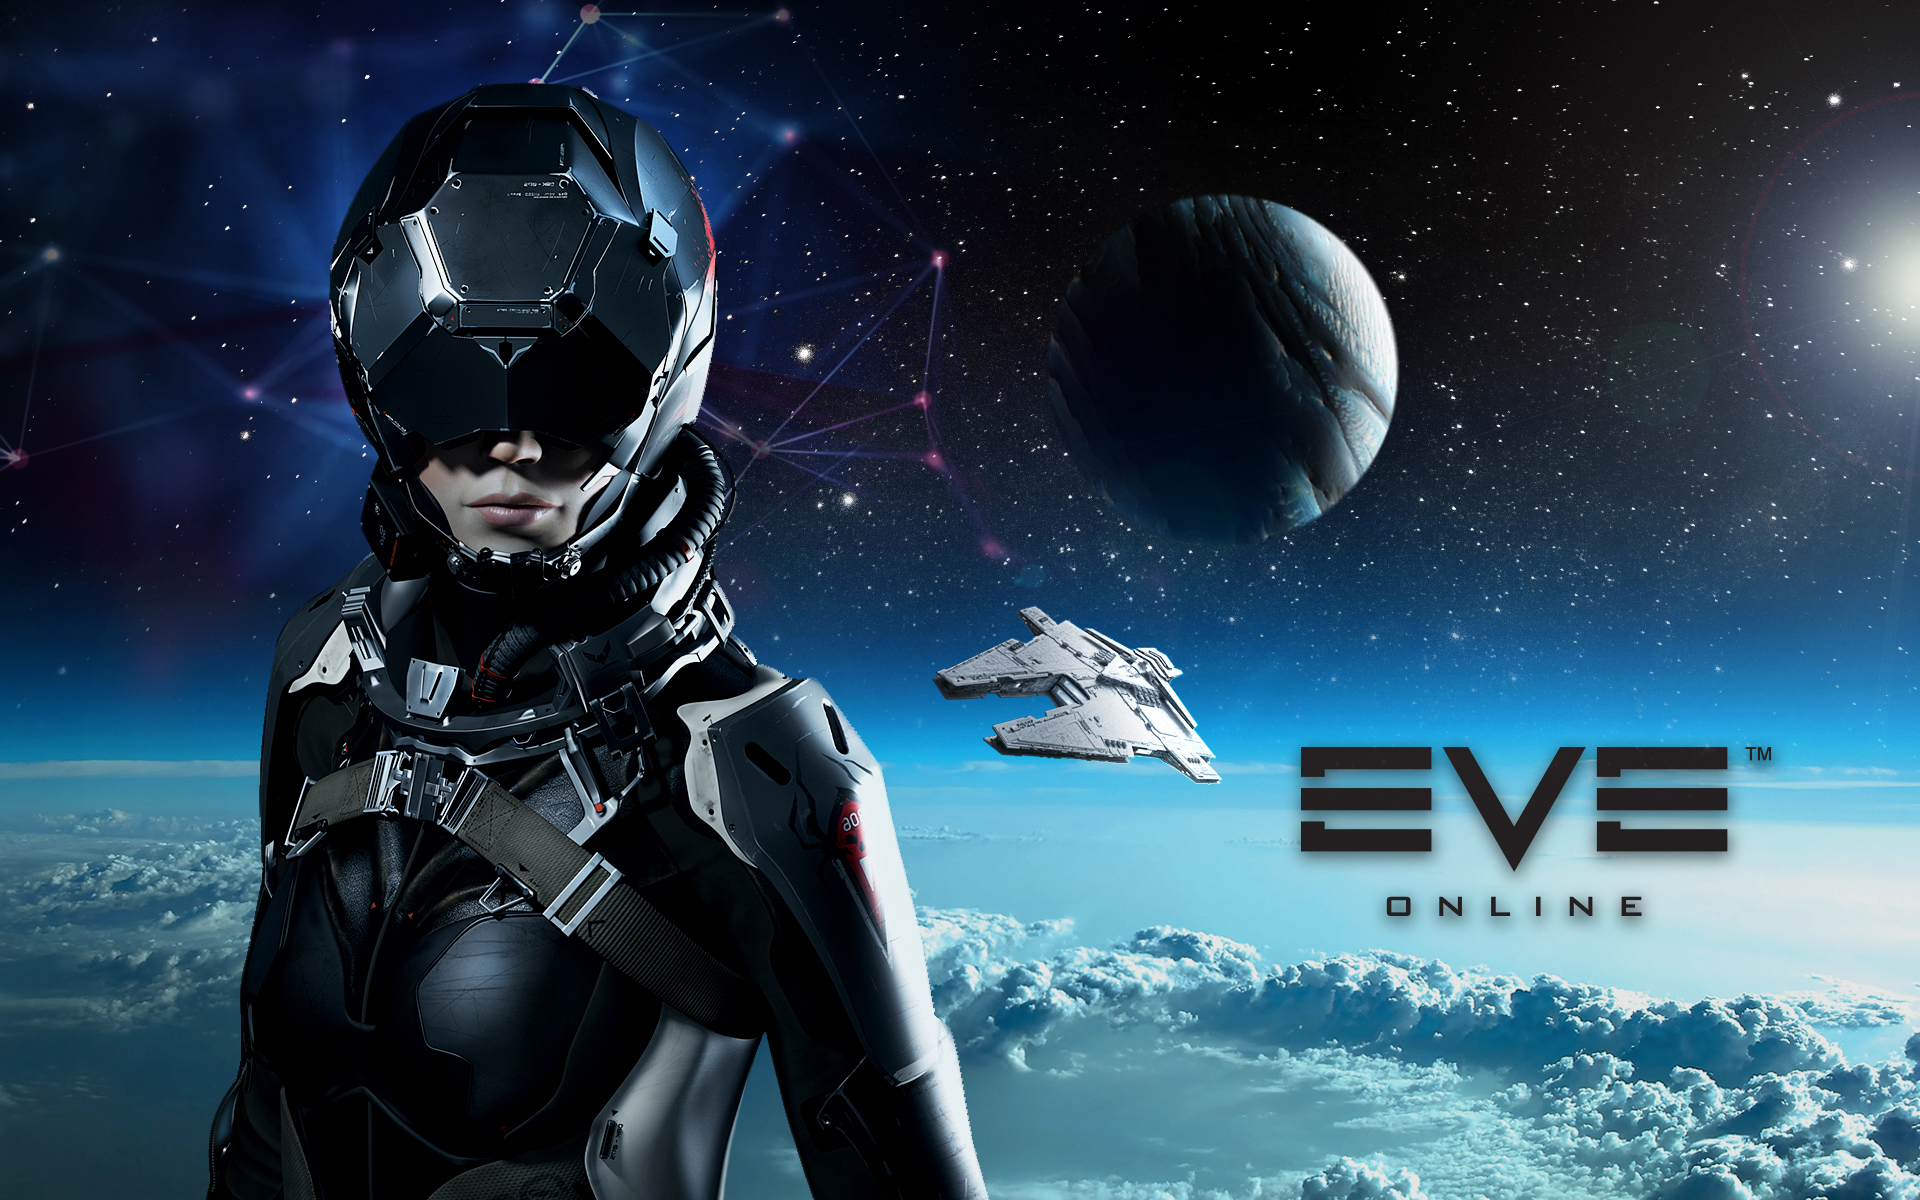 EVE Online - Adjustment layers and blending modes